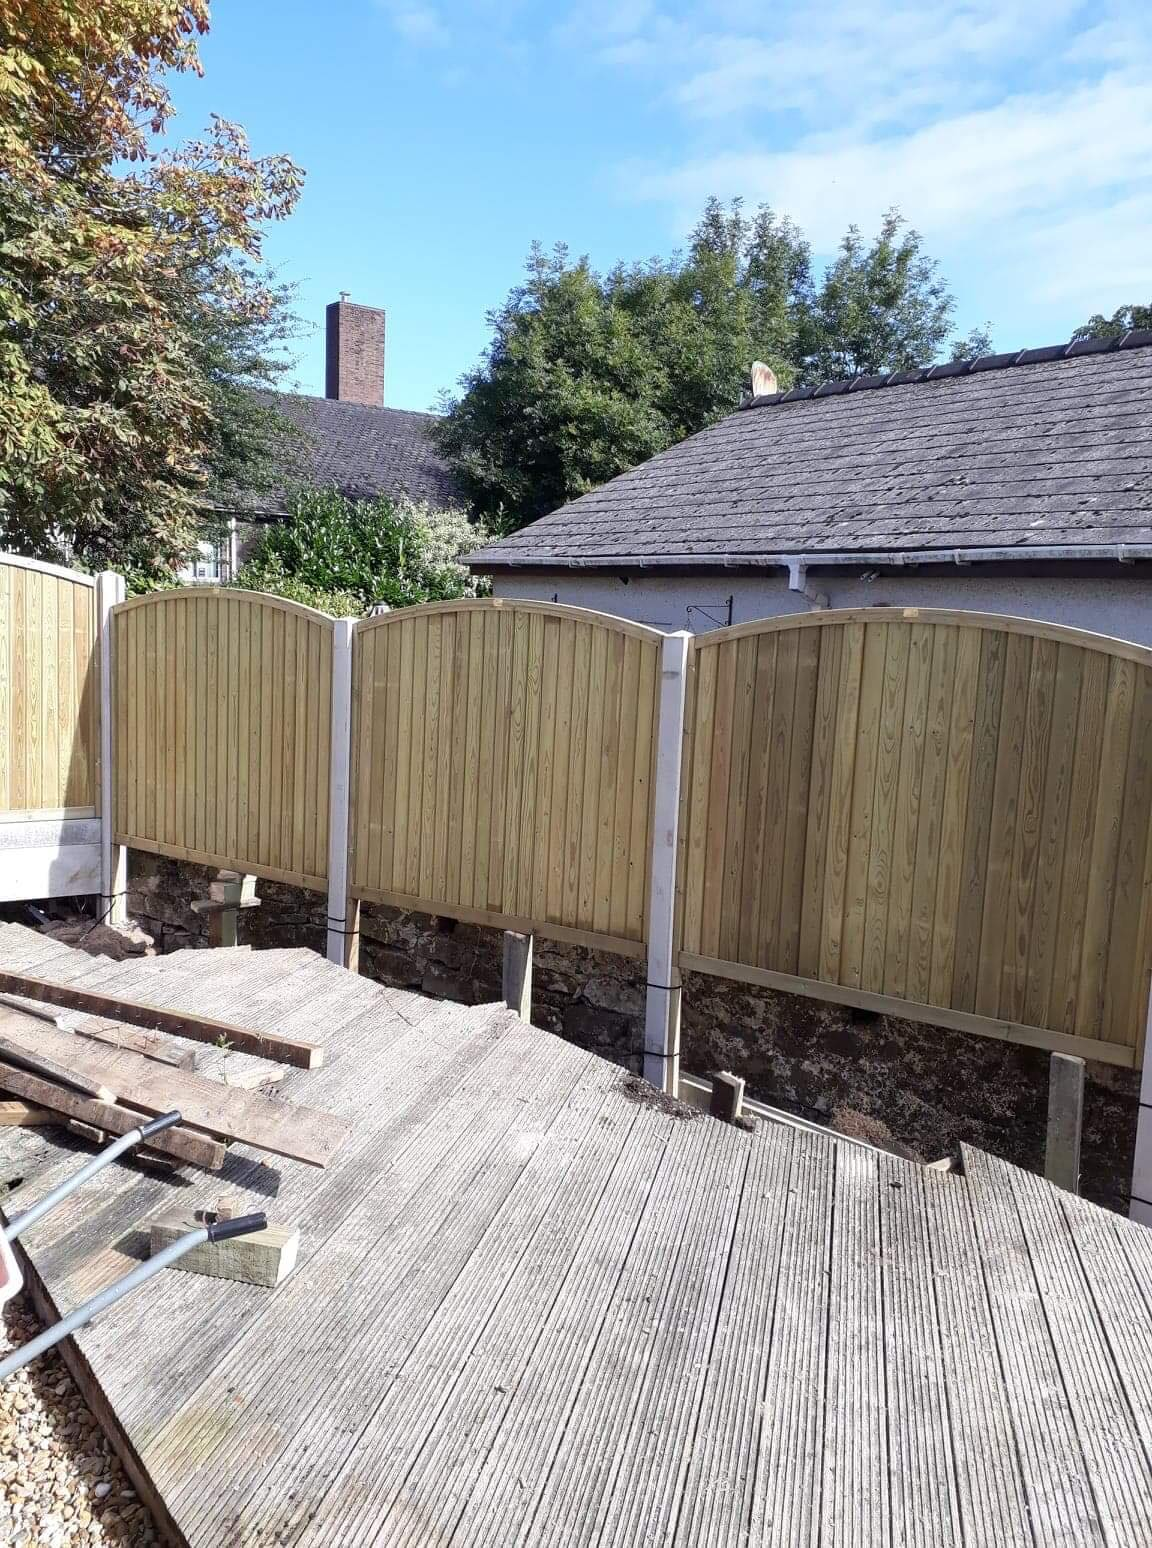 panel fencing in concrete base, the top of the panels are curved beside decking.